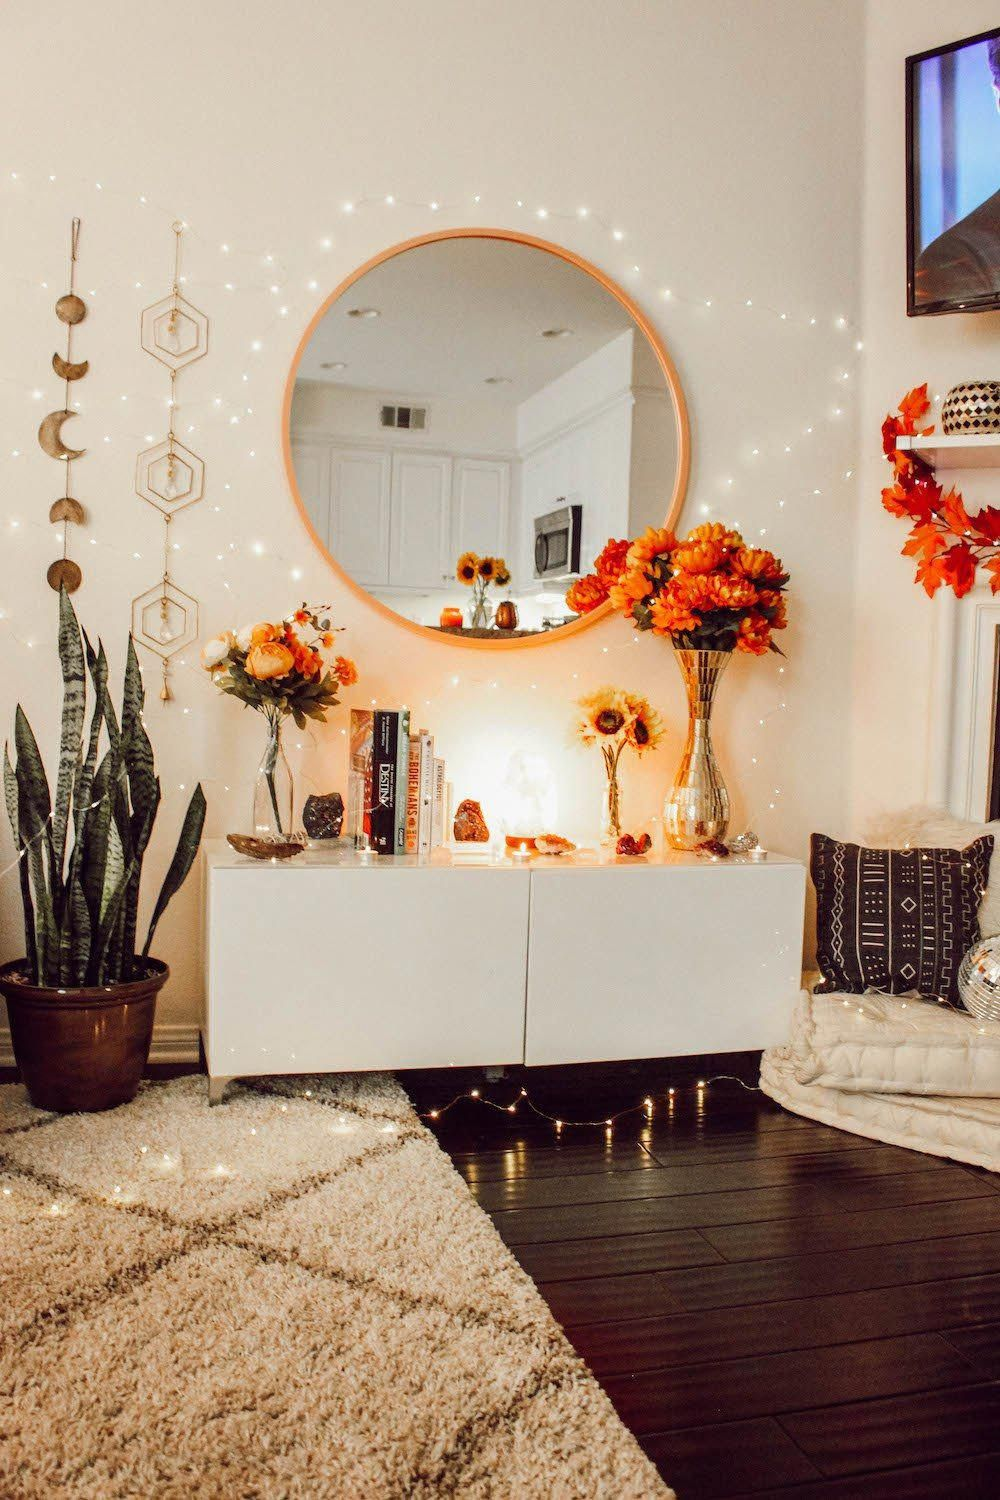 Bohemian Decor With Splashes Of 2019 Pantone Color Of The Year